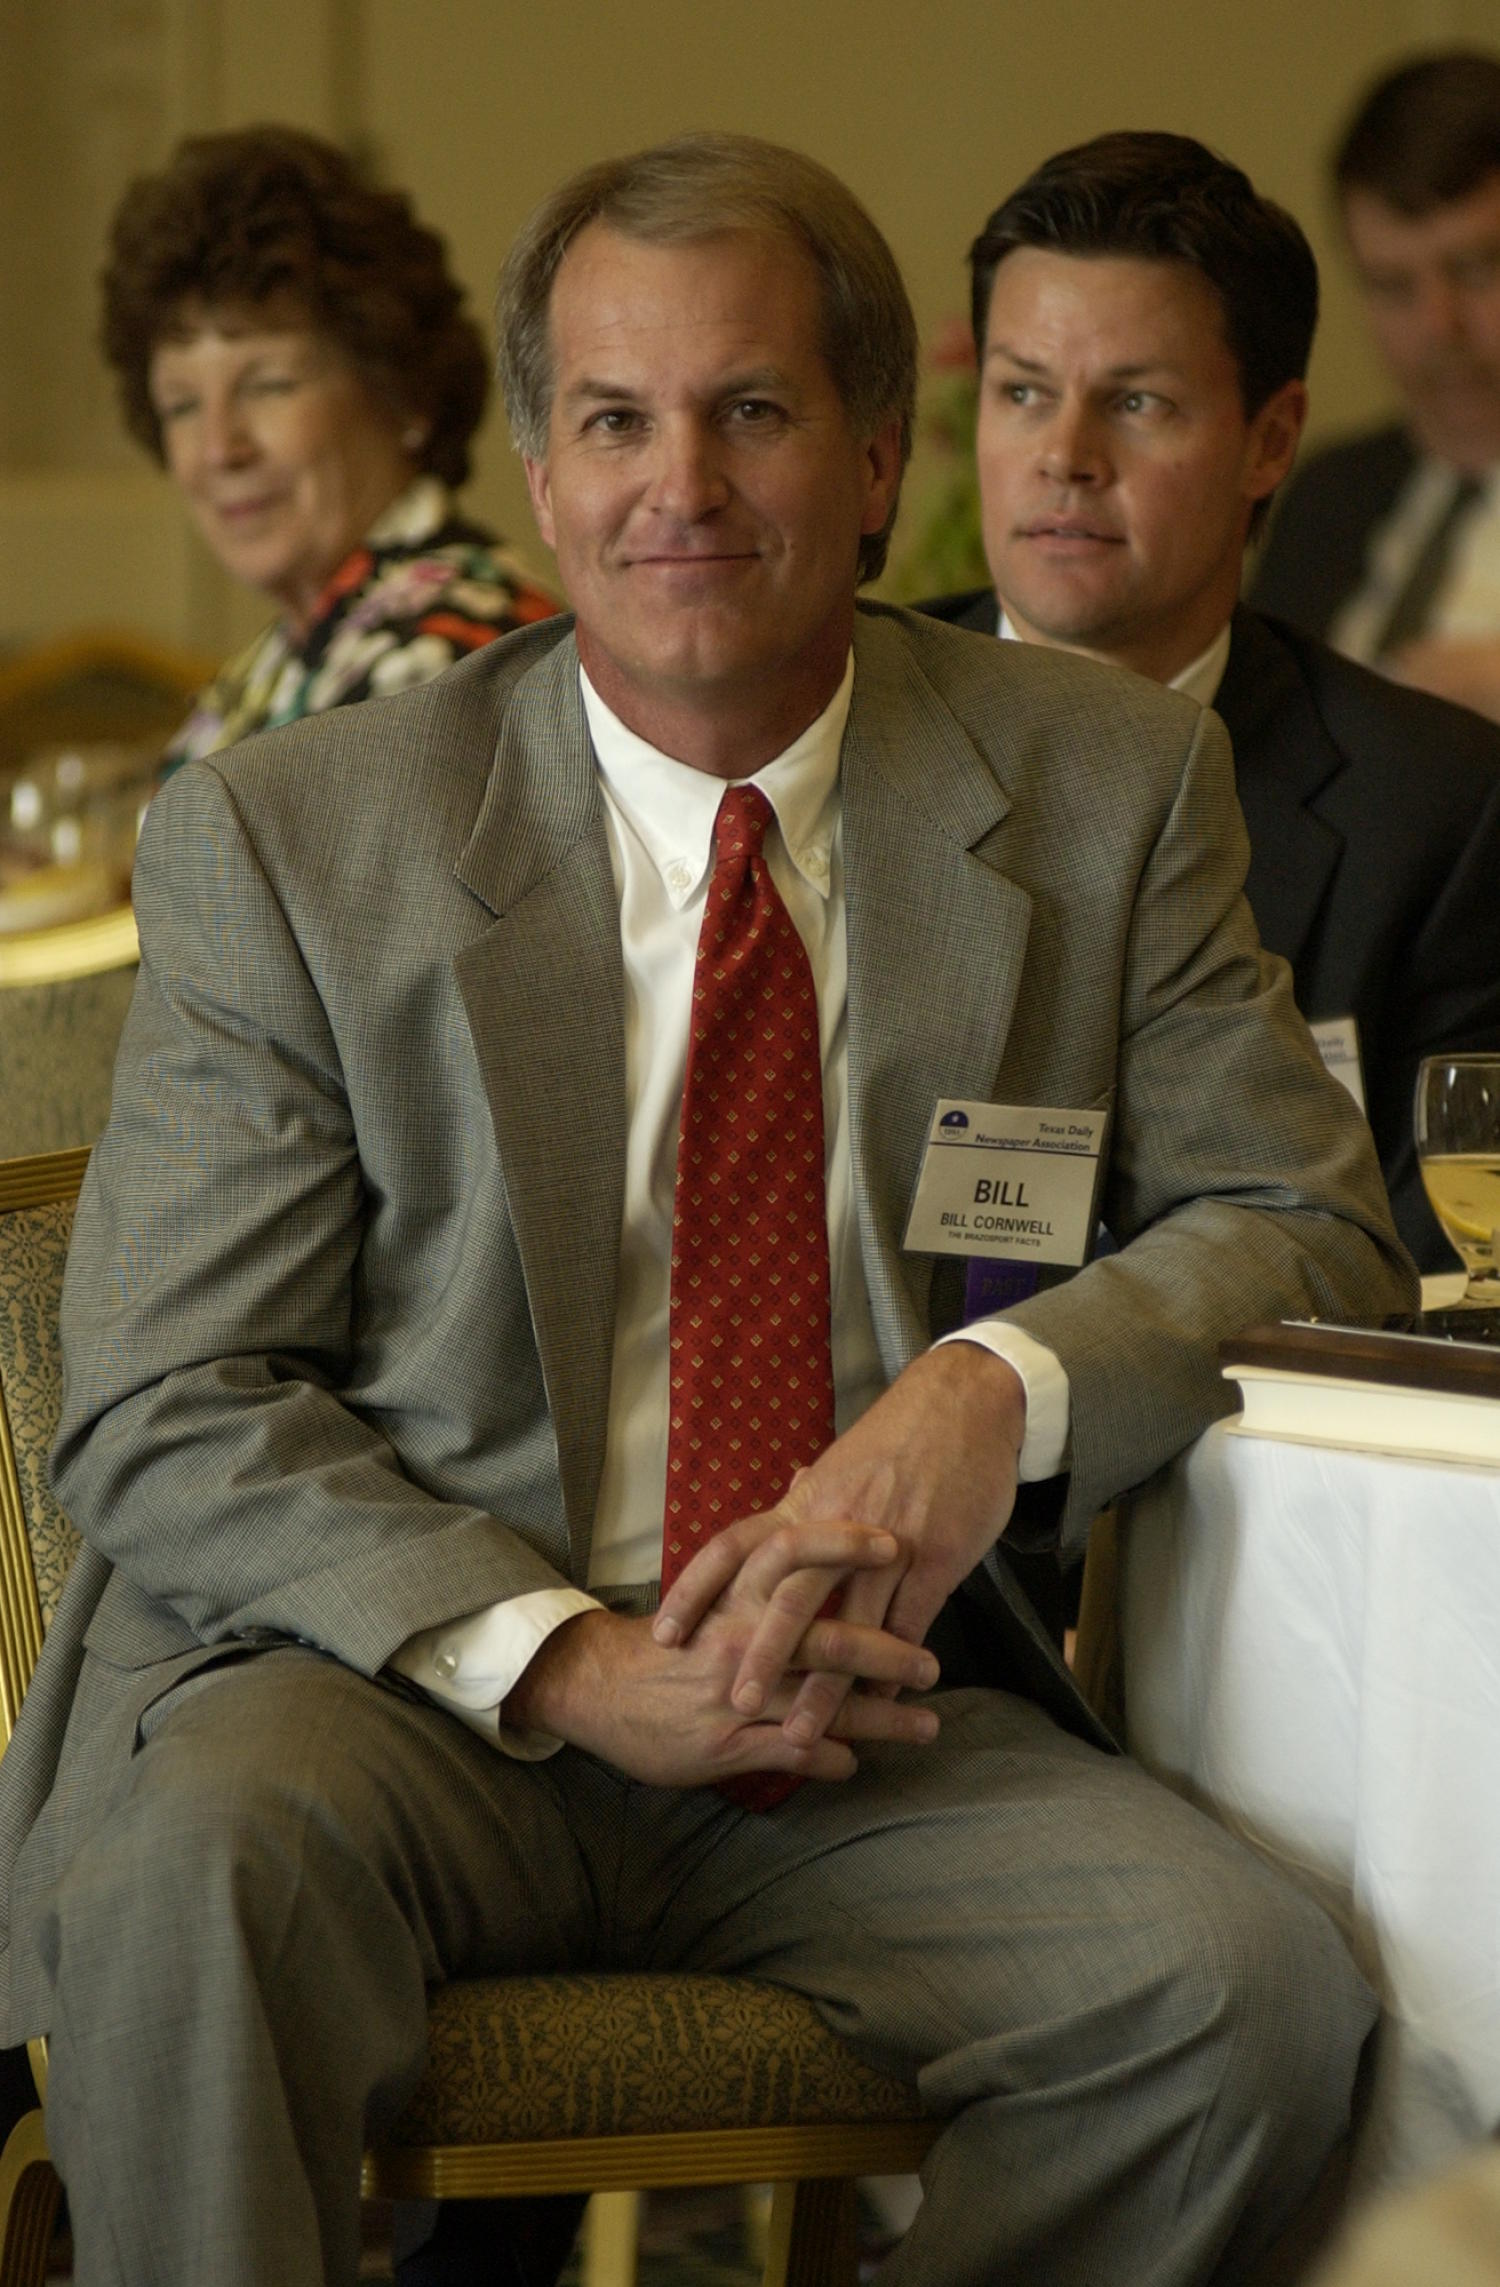 [Bill Cornwell attending a TDNA conference], Photograph of Bill Cornwell attending the 2004 Texas Daily News Association annual conference held in Corpus Christi. Cornwell is seen seated at his dinner table with his elbow resting on it as he looks at the photographer and smiles.,